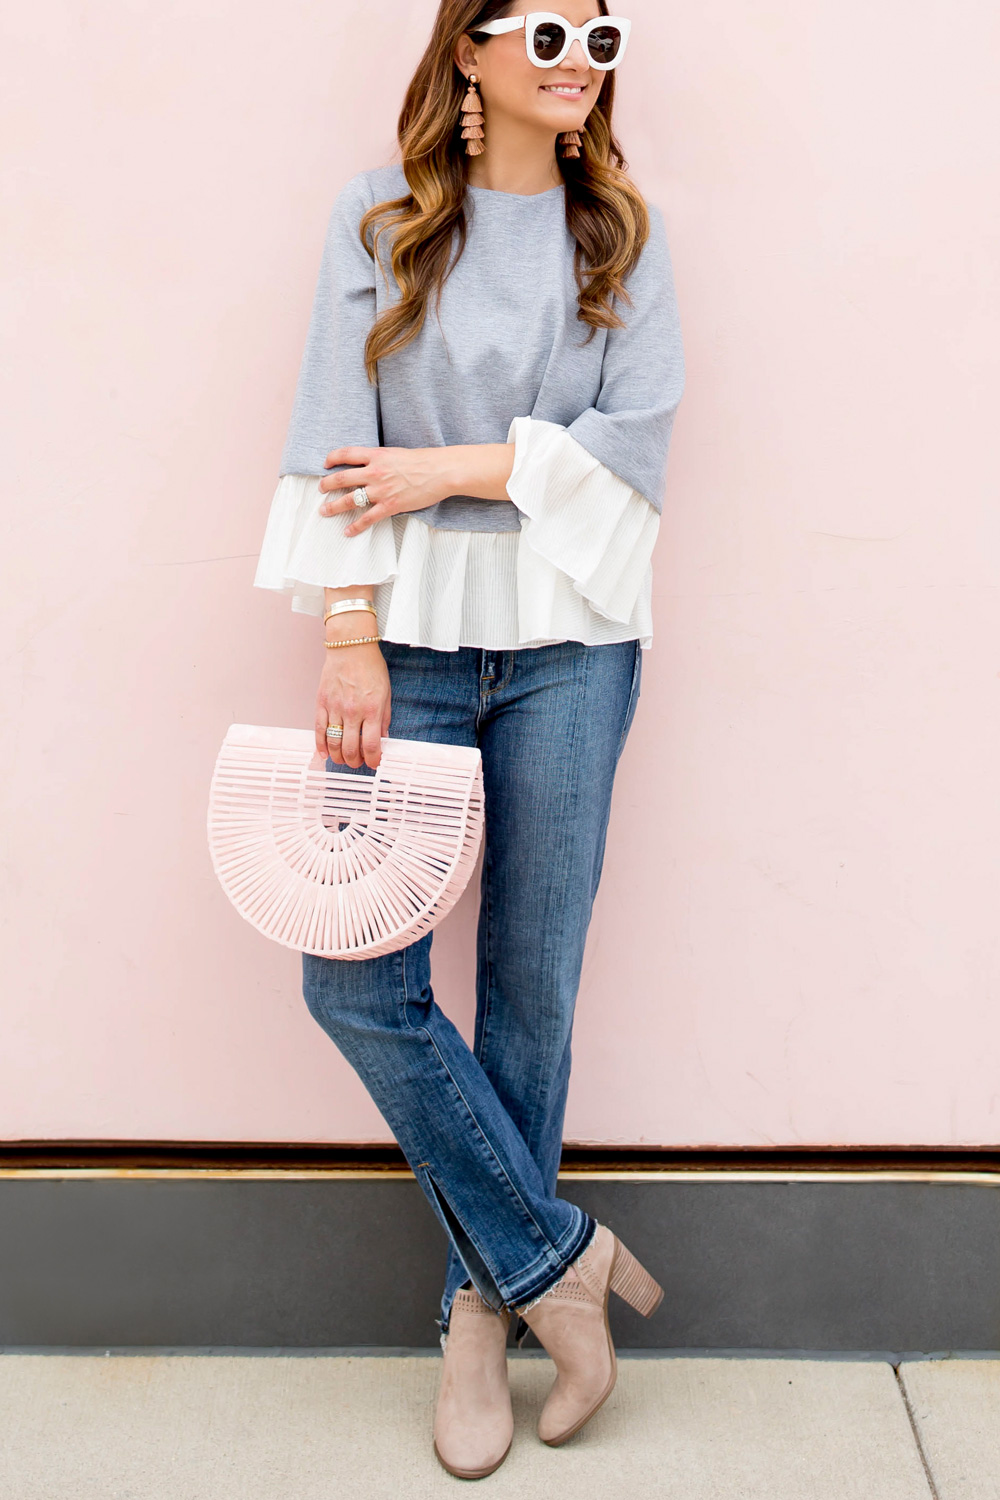 Cult Gaia Pink Ark Bag